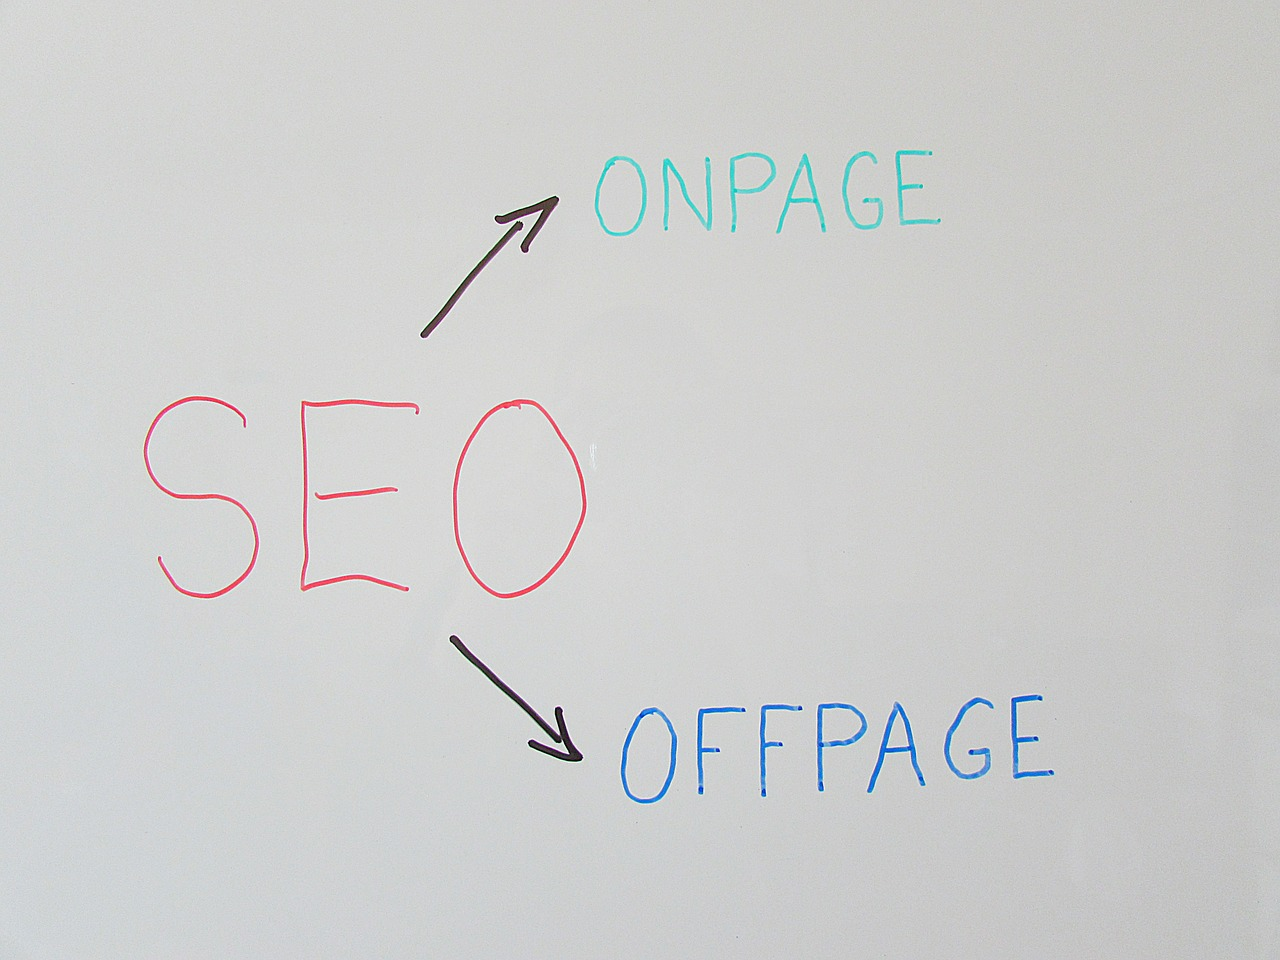 Seo,search engine optimization,onpage,offpage,free pictures - free image from needpix.com